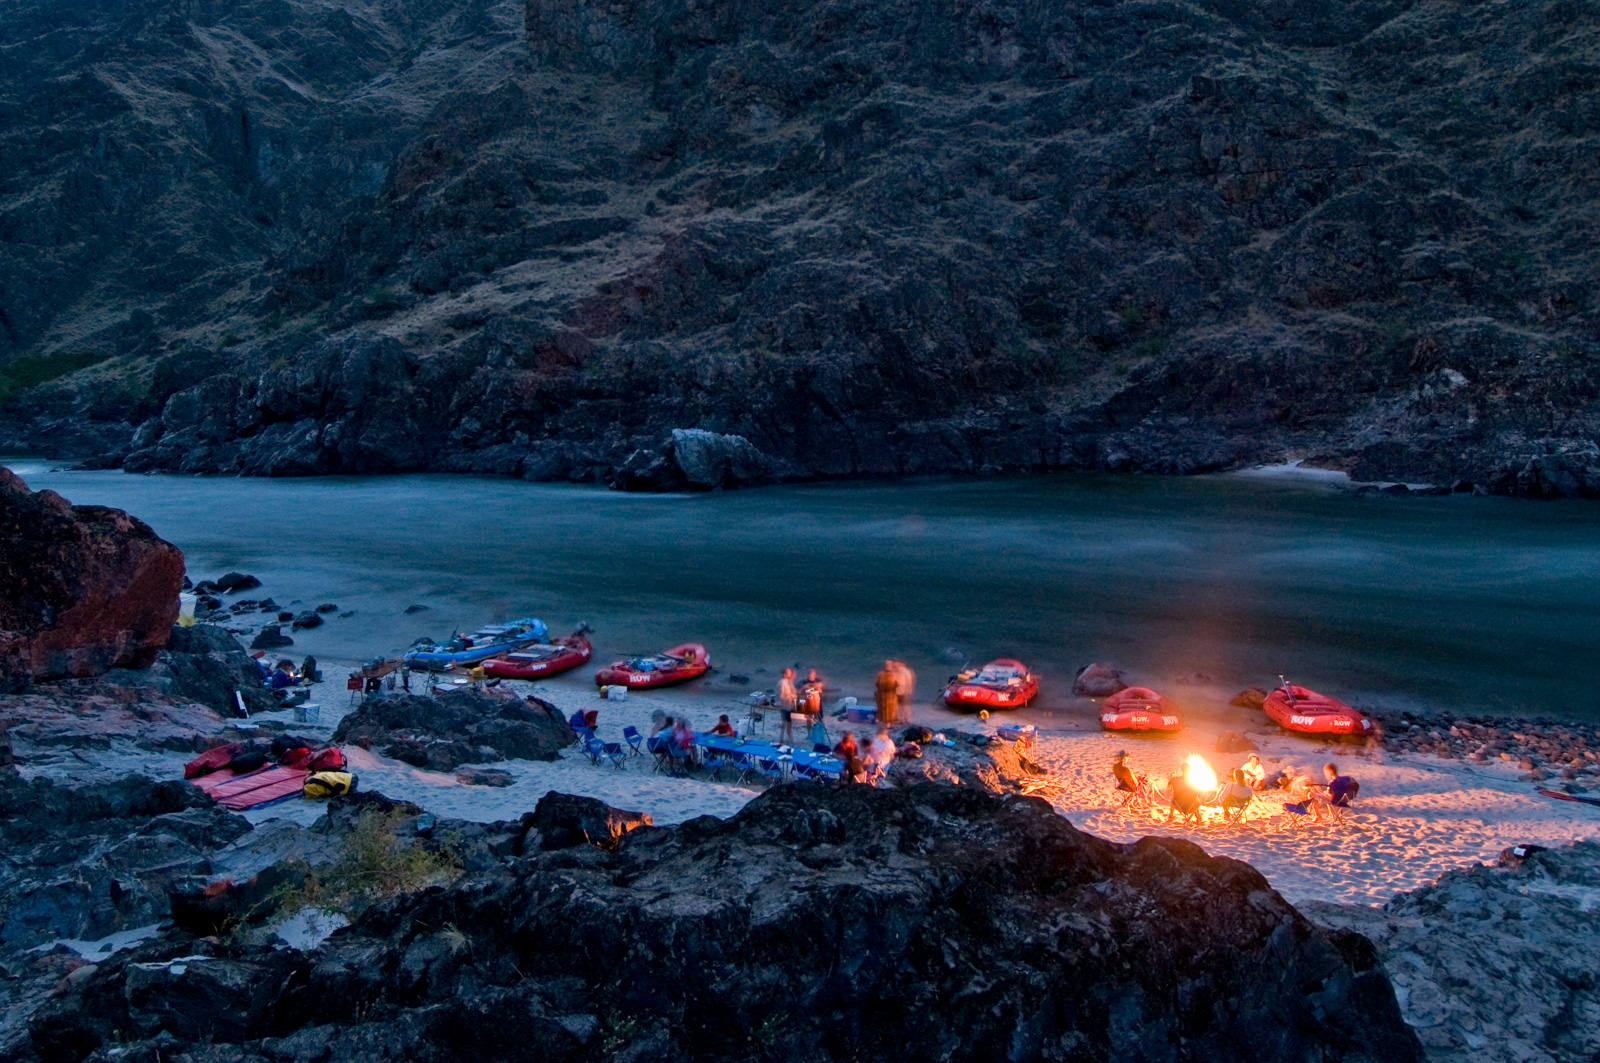 Camping On The Lower Salmon River